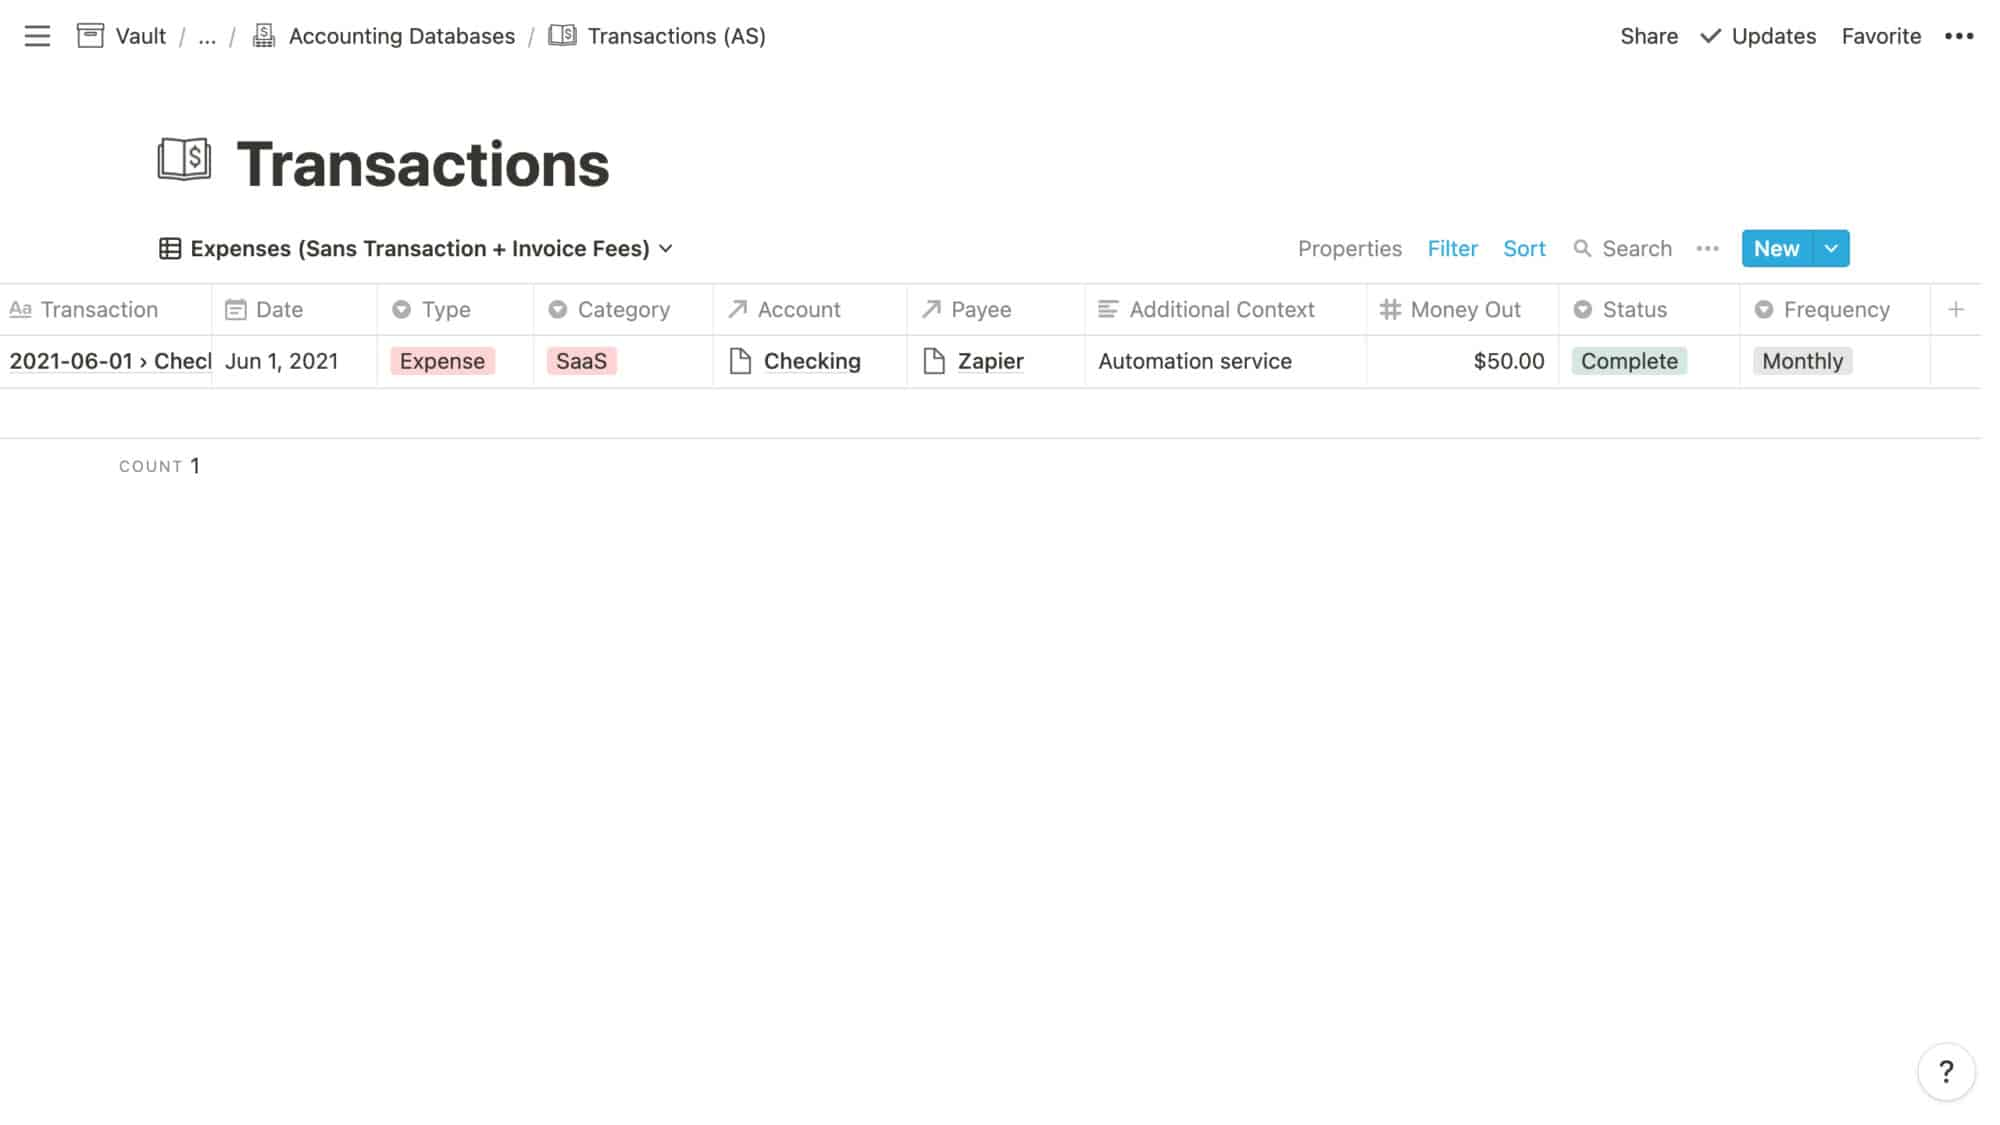 Transactions Example: Monthly Expense